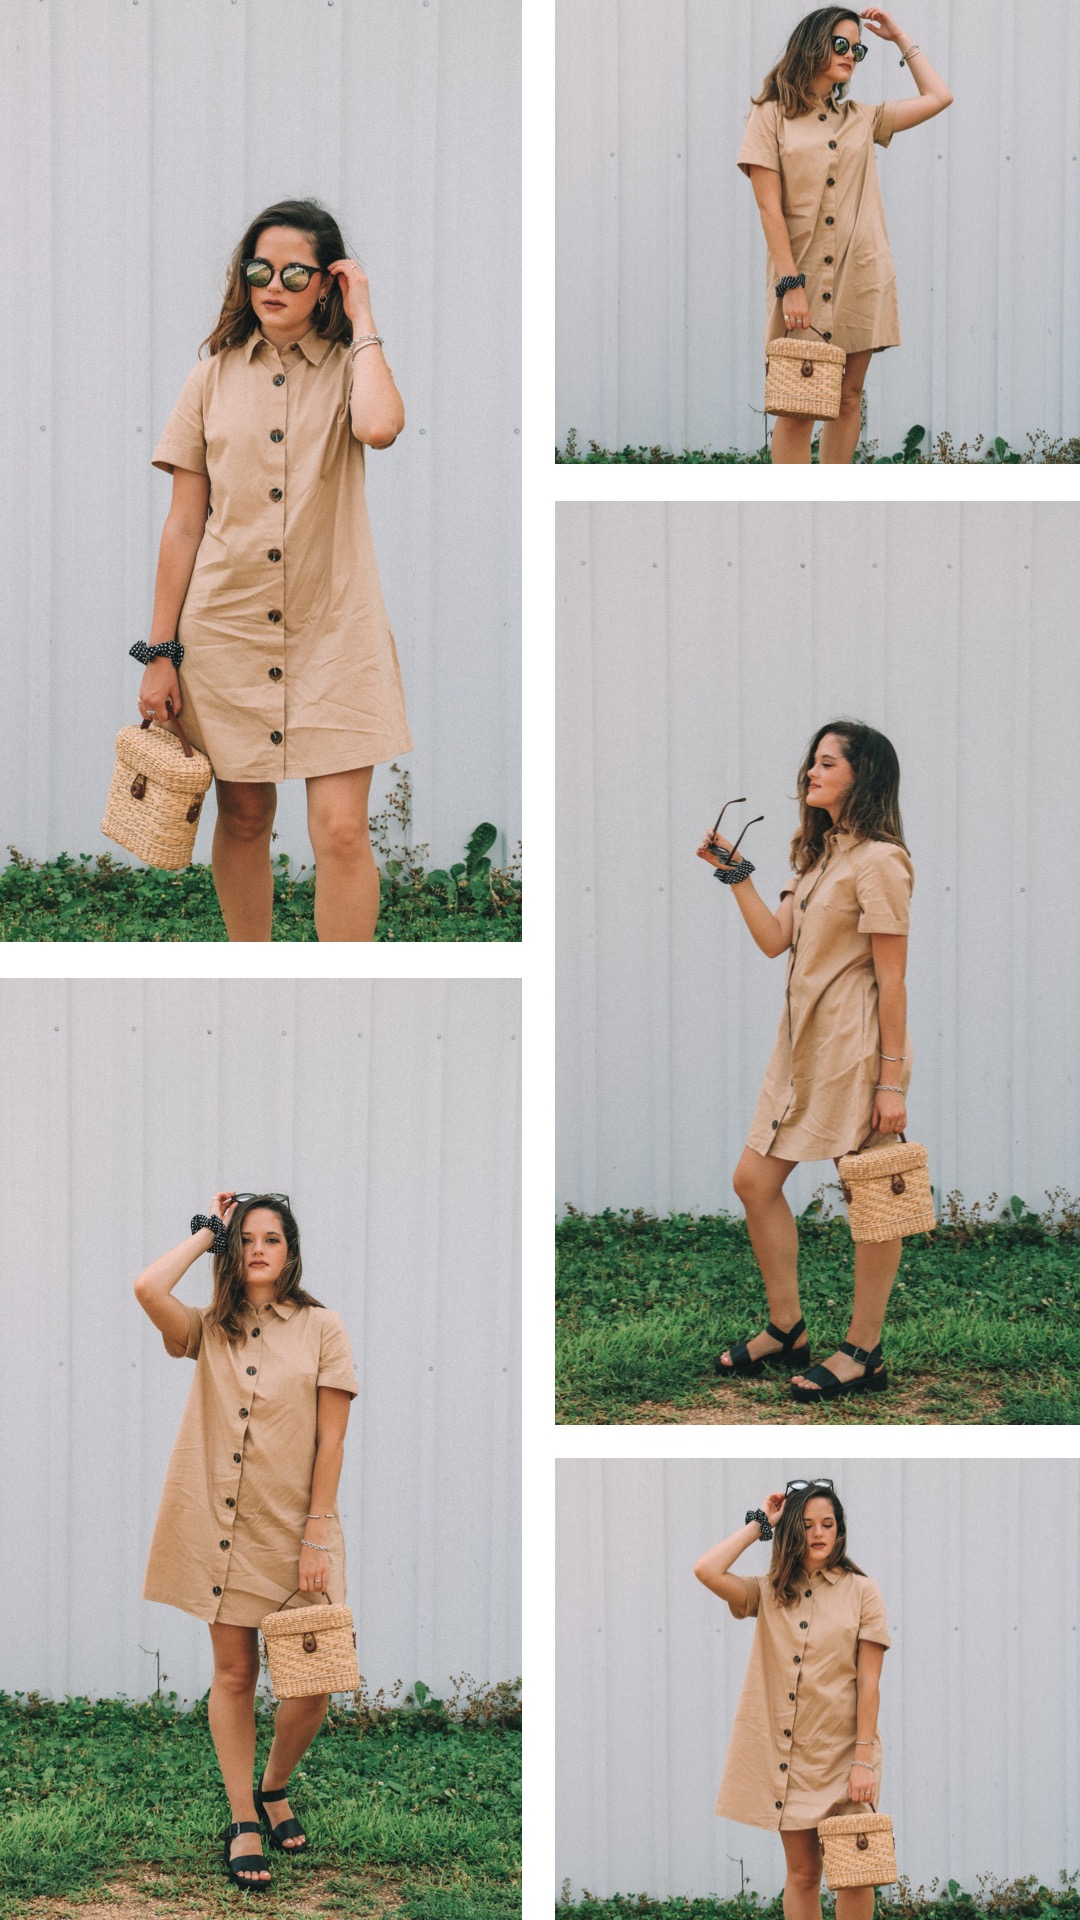 Fashion blogger Kathleen Harper's fall outfit idea with a khaki shirtdress.